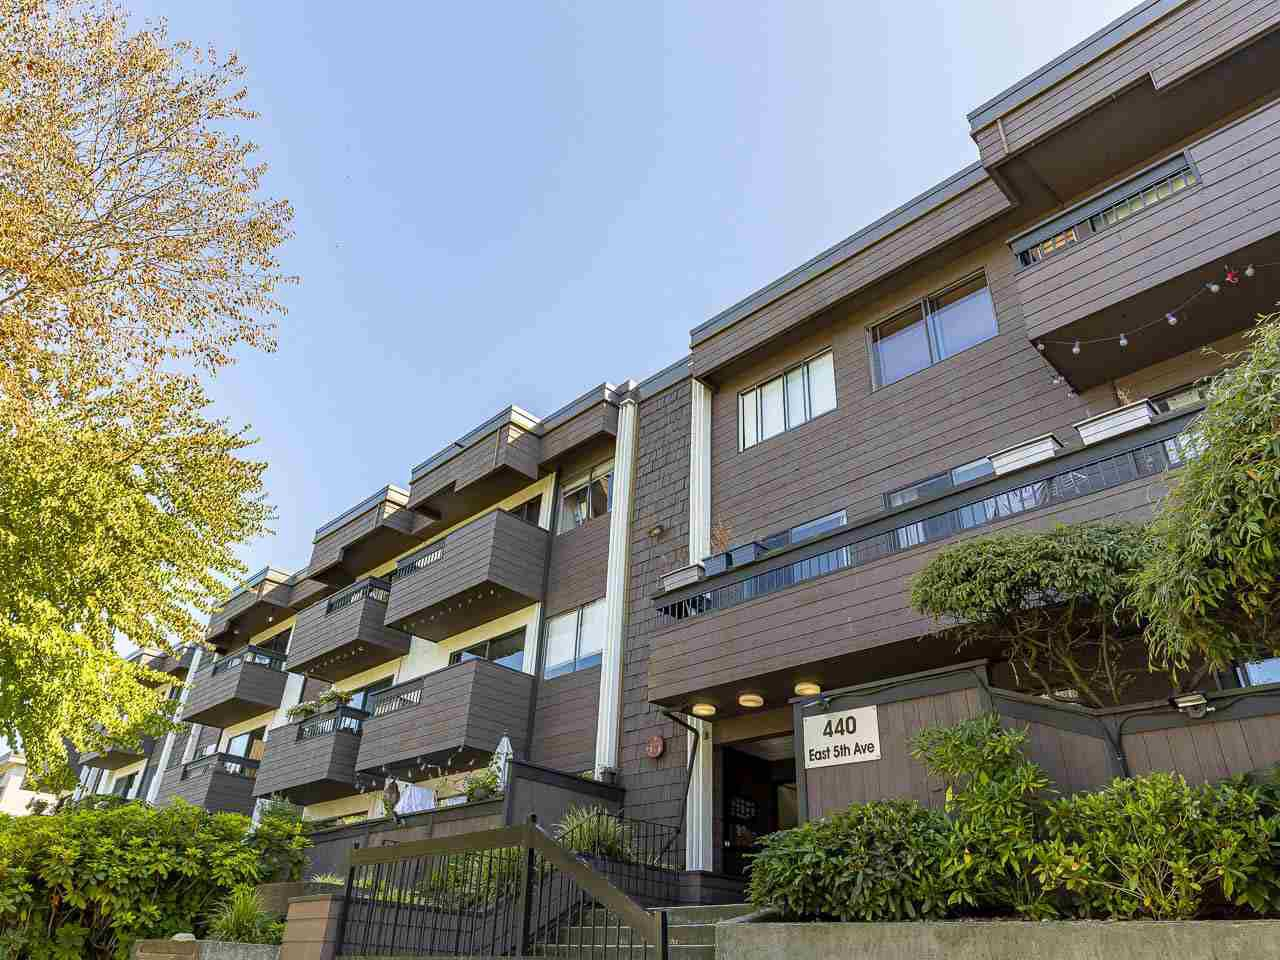 Main Photo: 303 440 E 5TH AVENUE in Vancouver: Mount Pleasant VE Condo for sale (Vancouver East)  : MLS®# R2400226